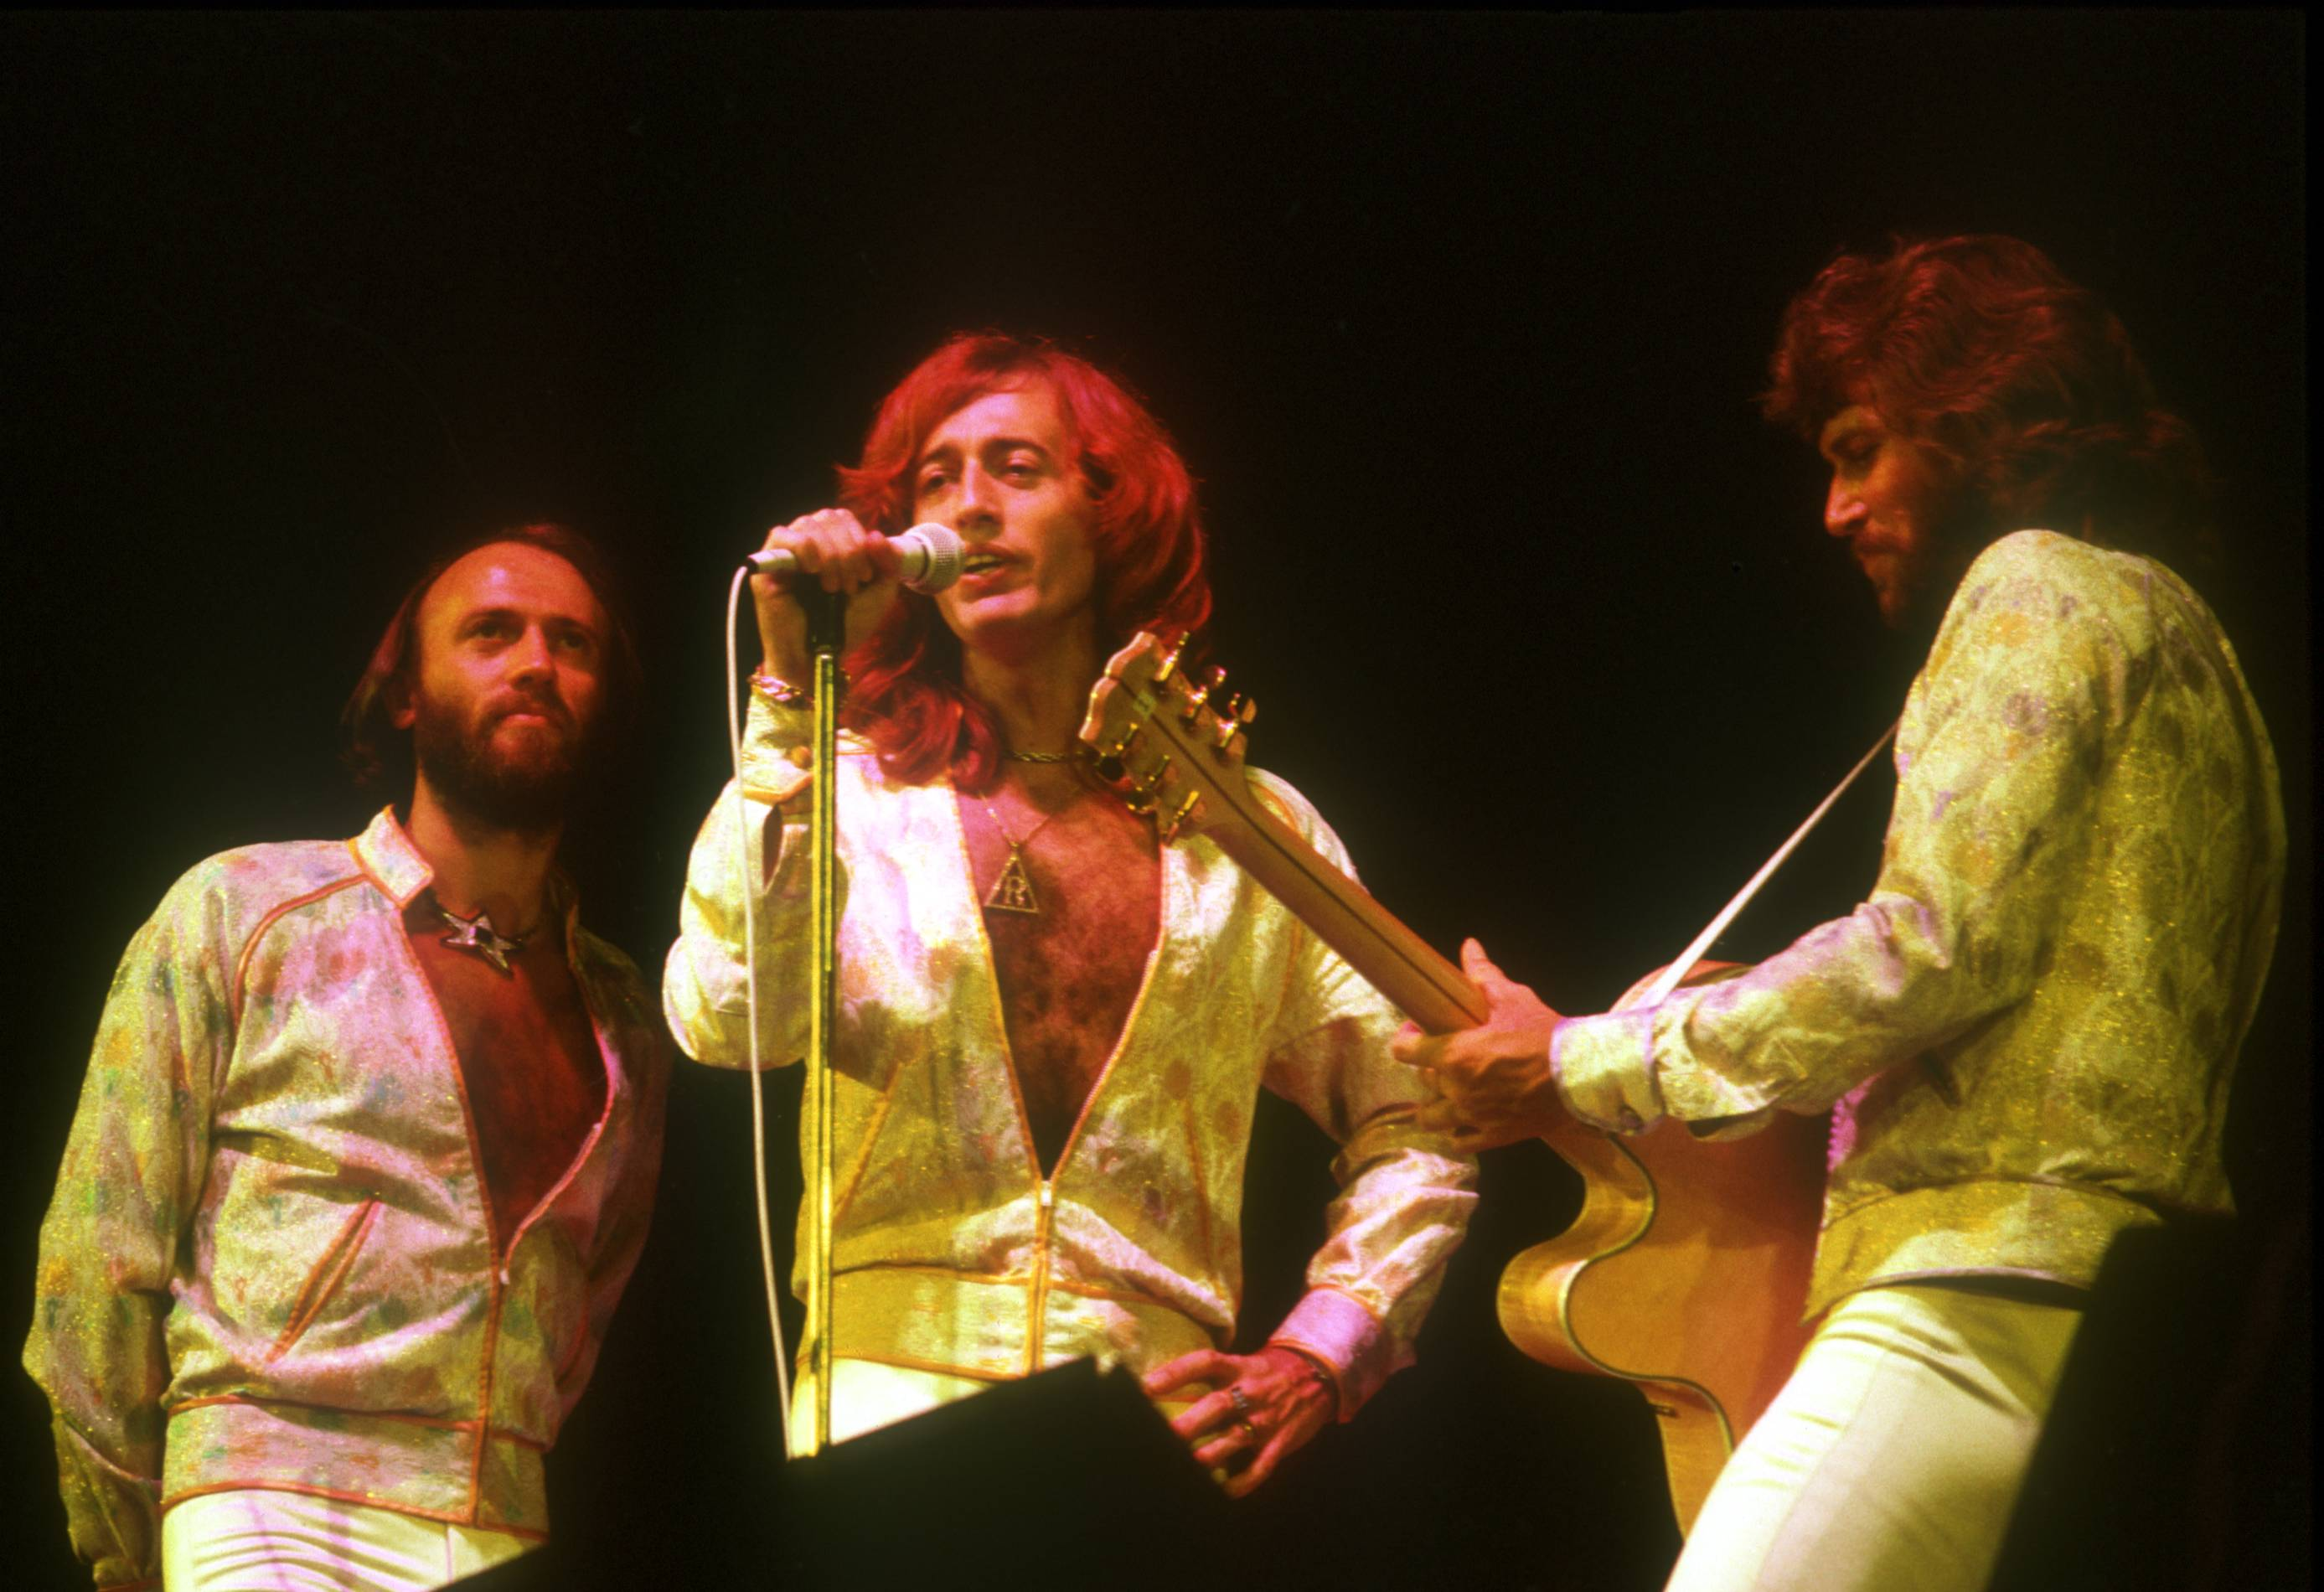 Bee Gees on stage in 1970